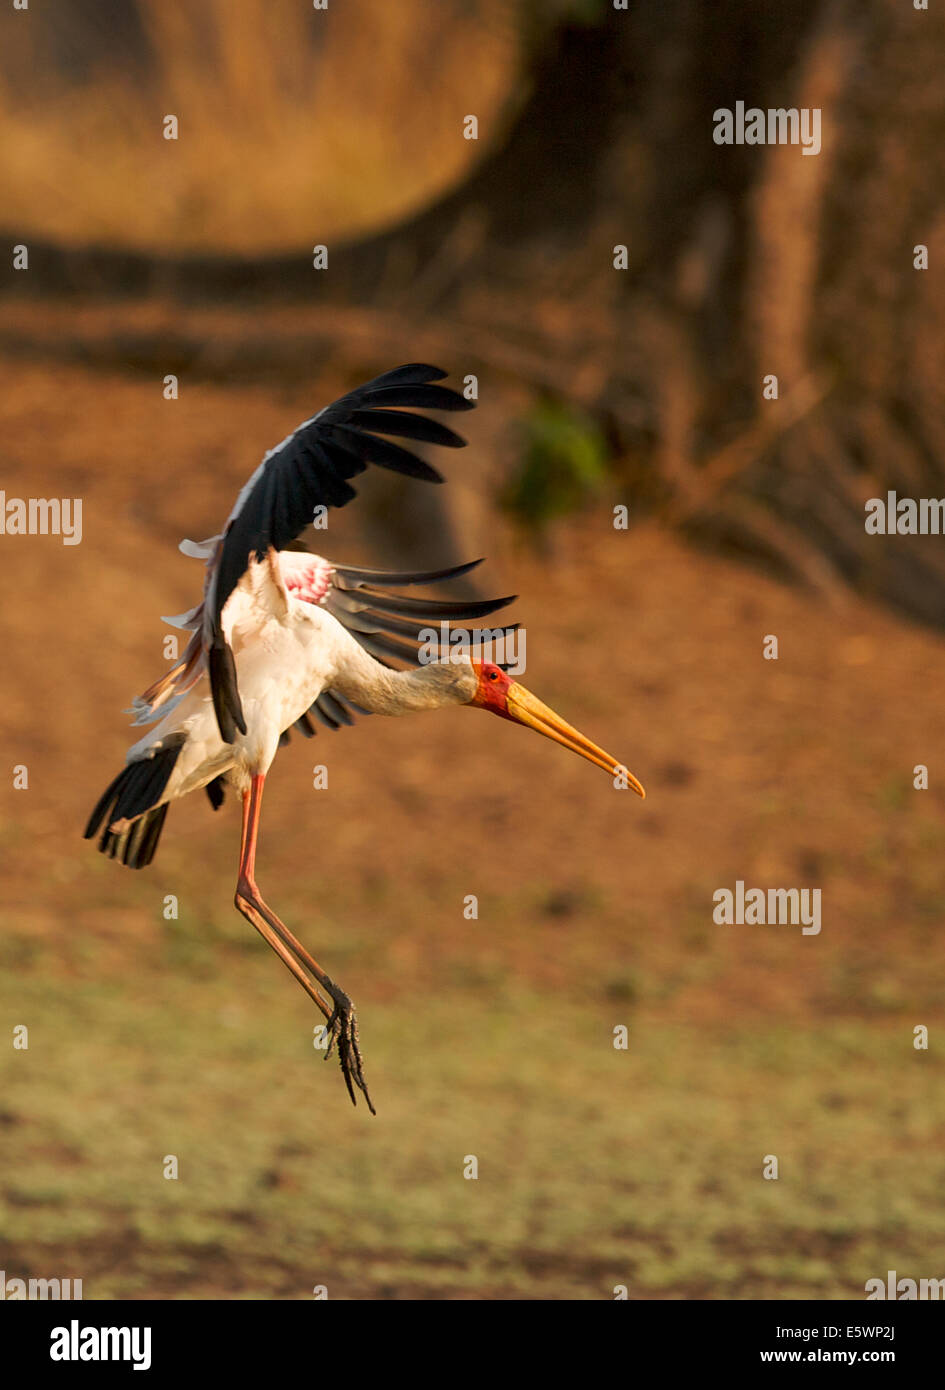 Yellow-billed stork landing on grass, Mana Pools, Zimbabwe - Stock Image